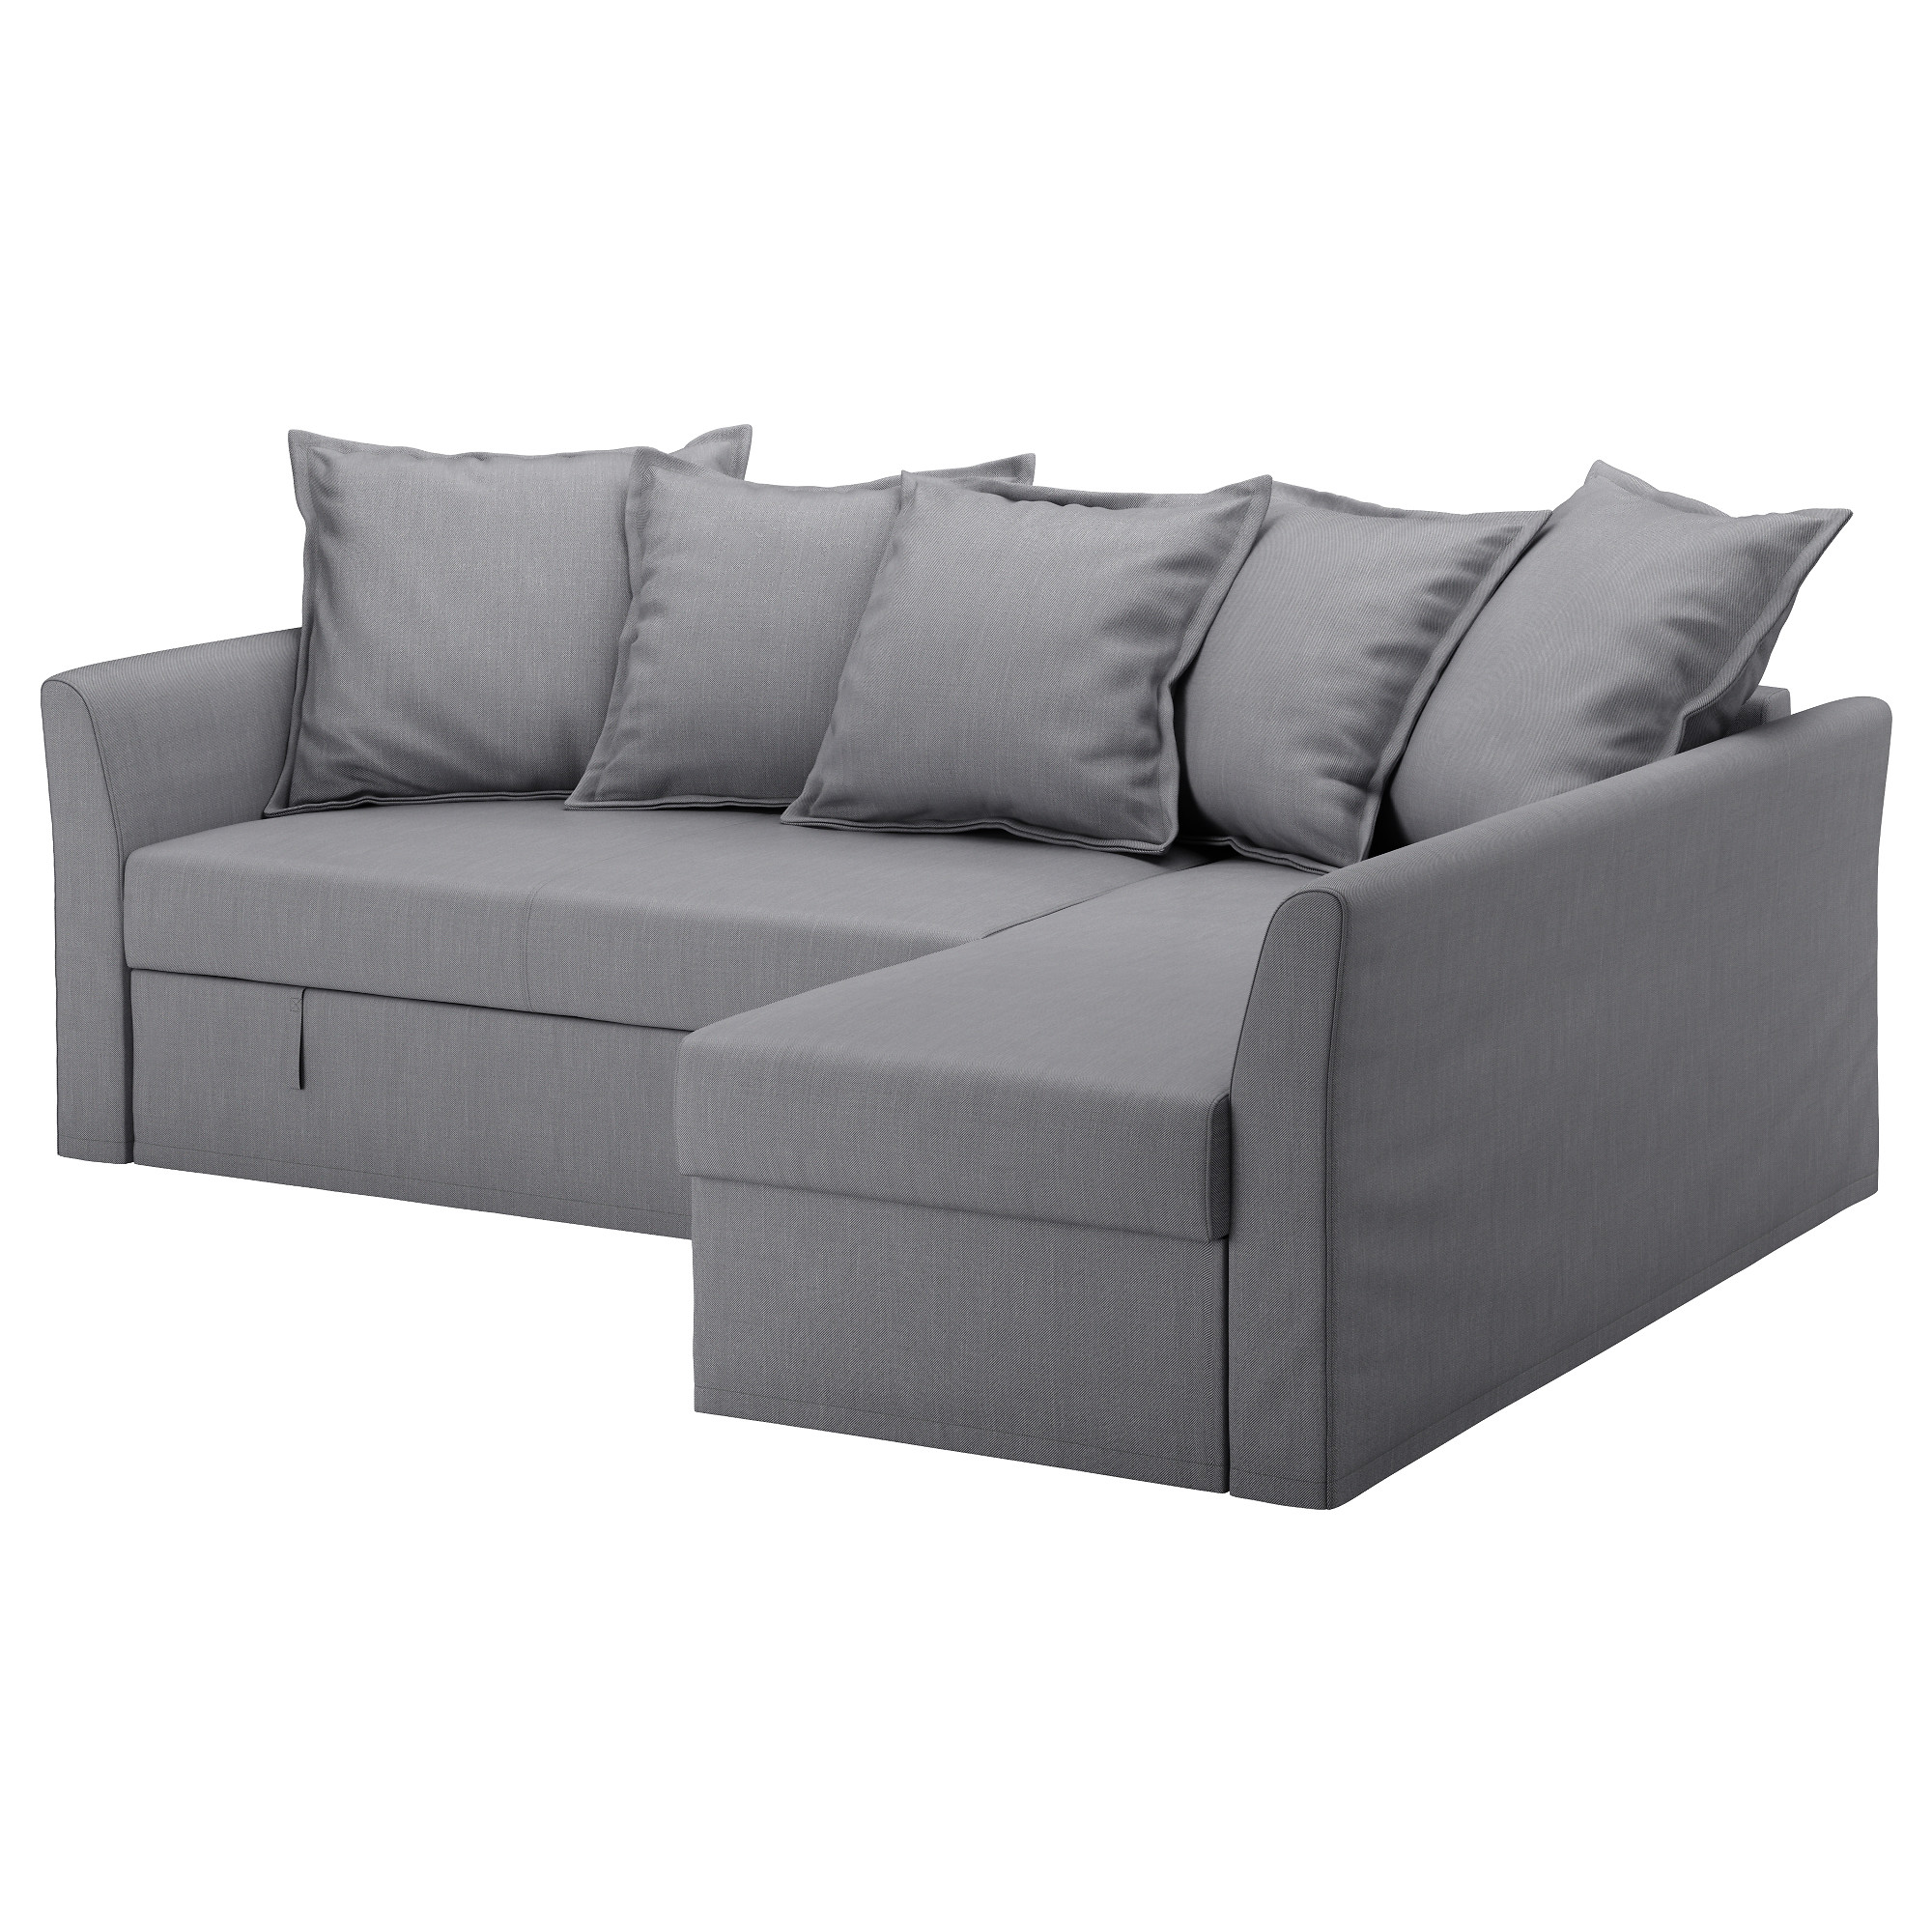 sc 1 st  Ikea : sectional sofa bed ikea - Sectionals, Sofas & Couches